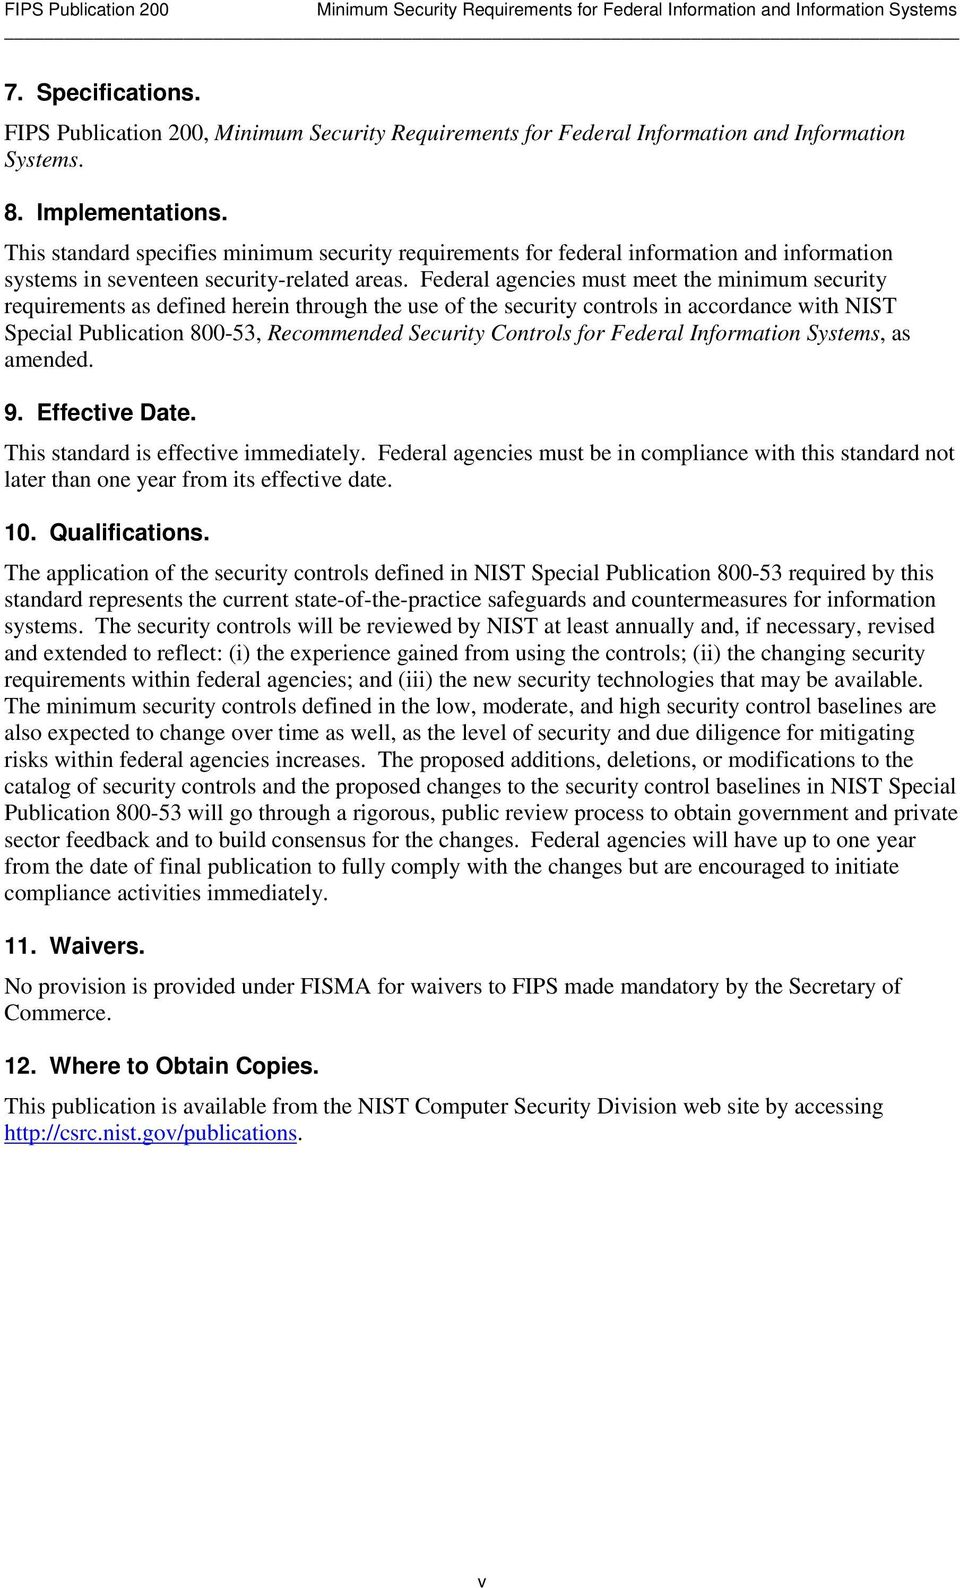 Federal agencies must meet the minimum security requirements as defined herein through the use of the security controls in accordance with NIST Special Publication 800-53, Recommended Security